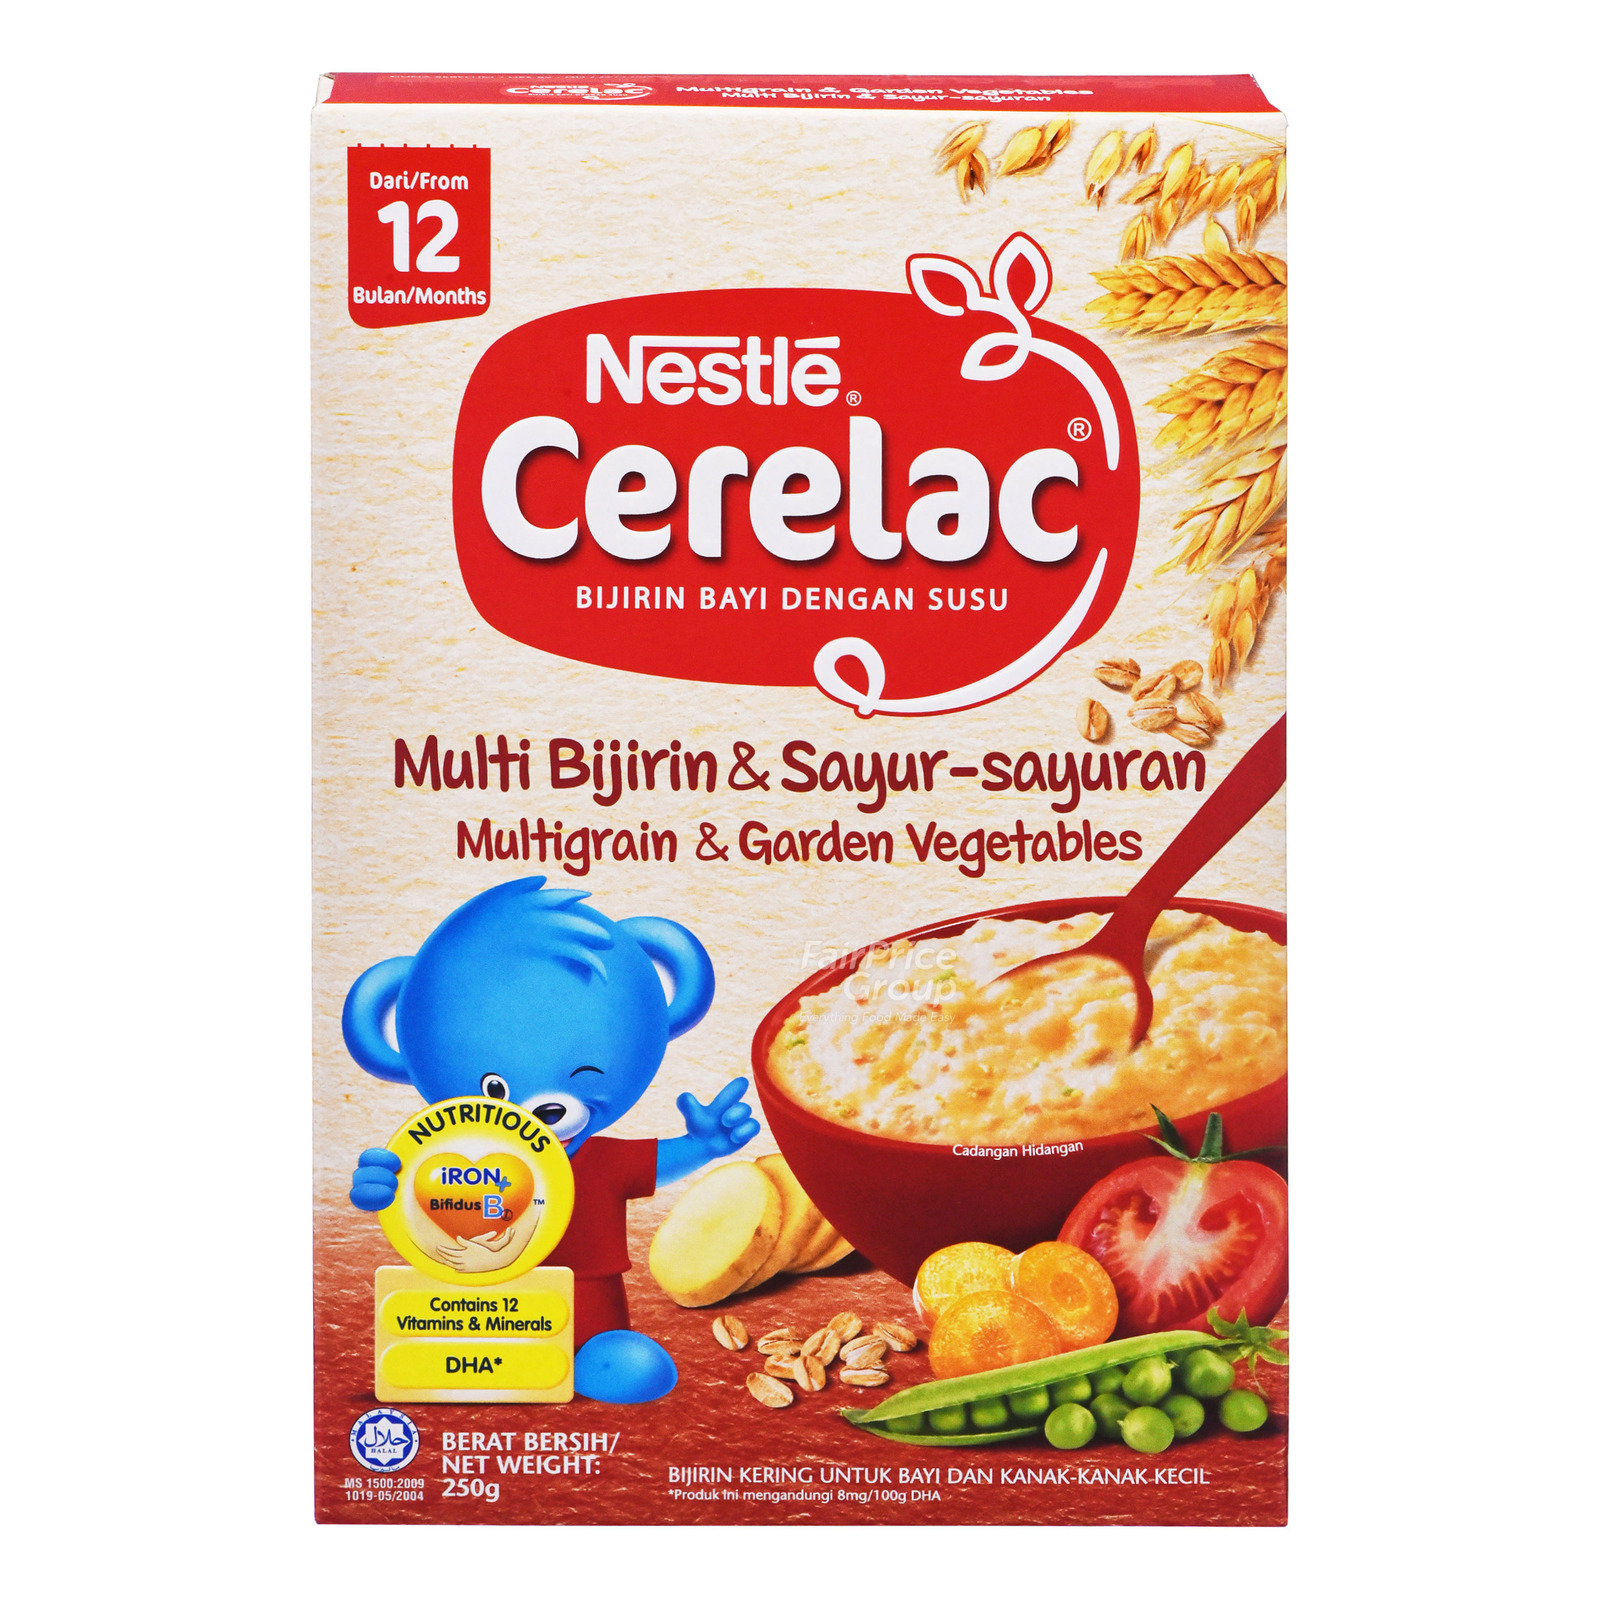 Nestle Cerelac Cereal - MultiGrain & Garden Vegetable (12 Months)